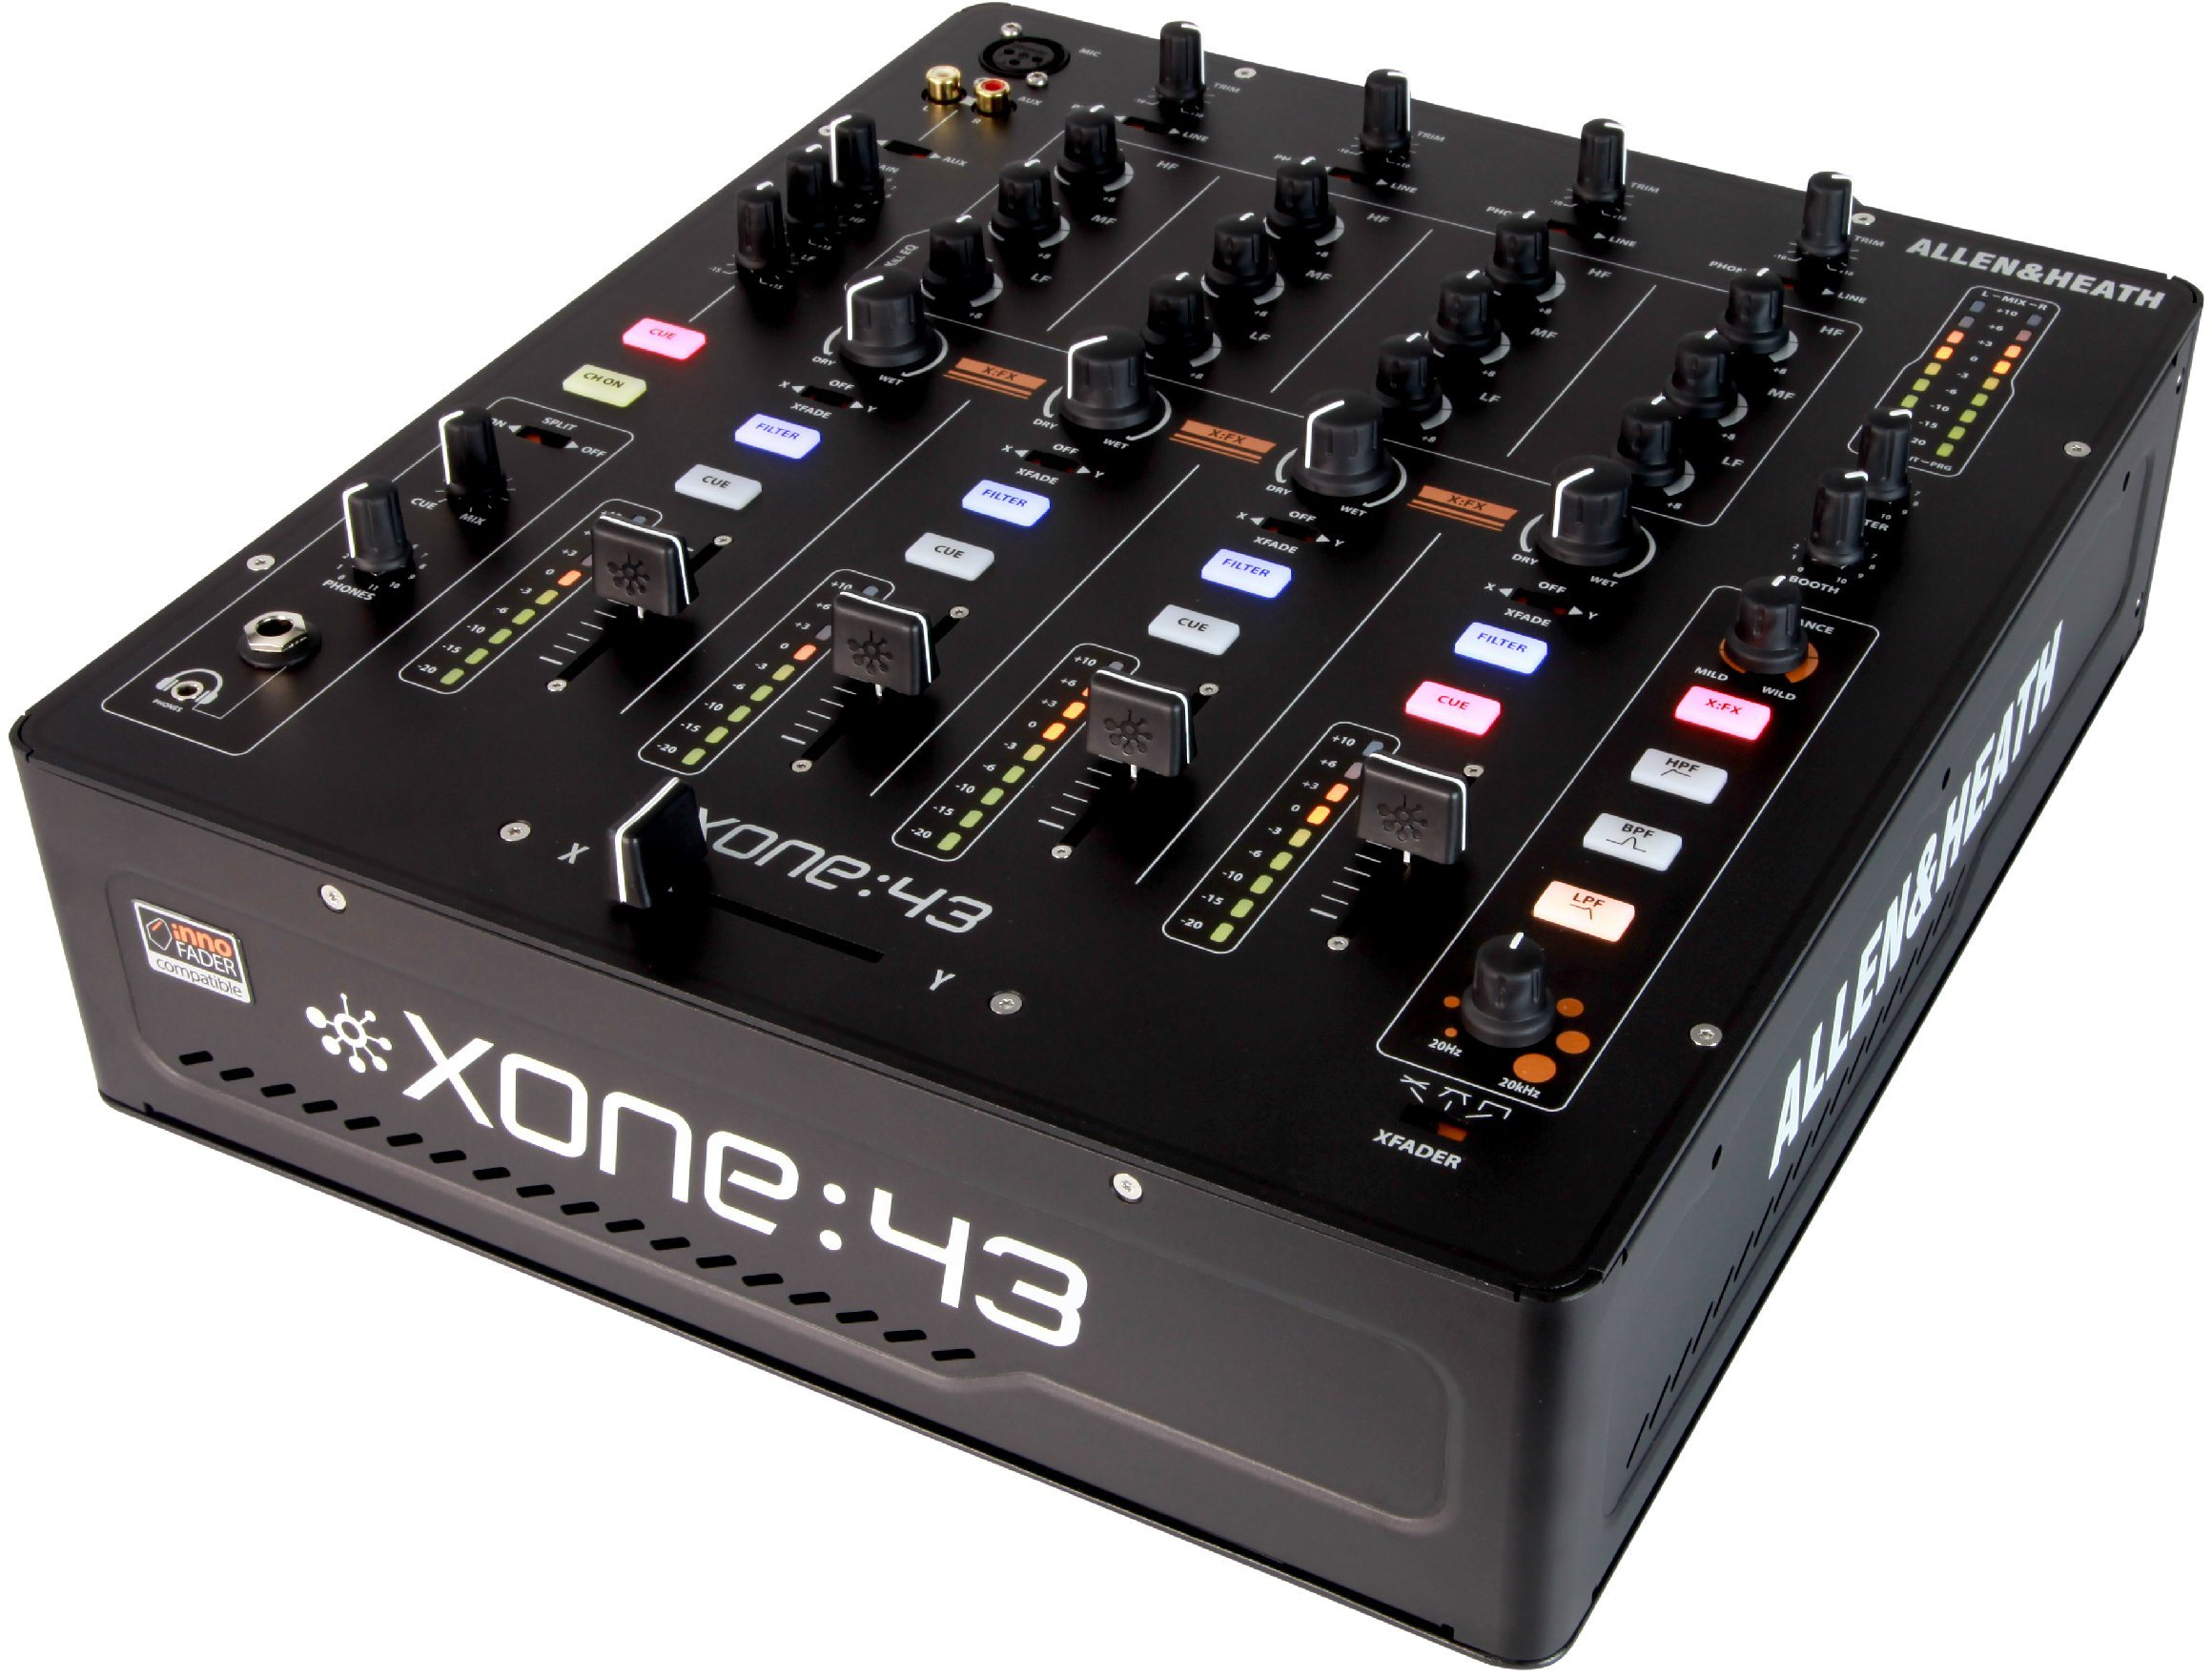 allen heath 39 s new analog mixer could be one to beat xone 43 4 1 cdm create digital music. Black Bedroom Furniture Sets. Home Design Ideas